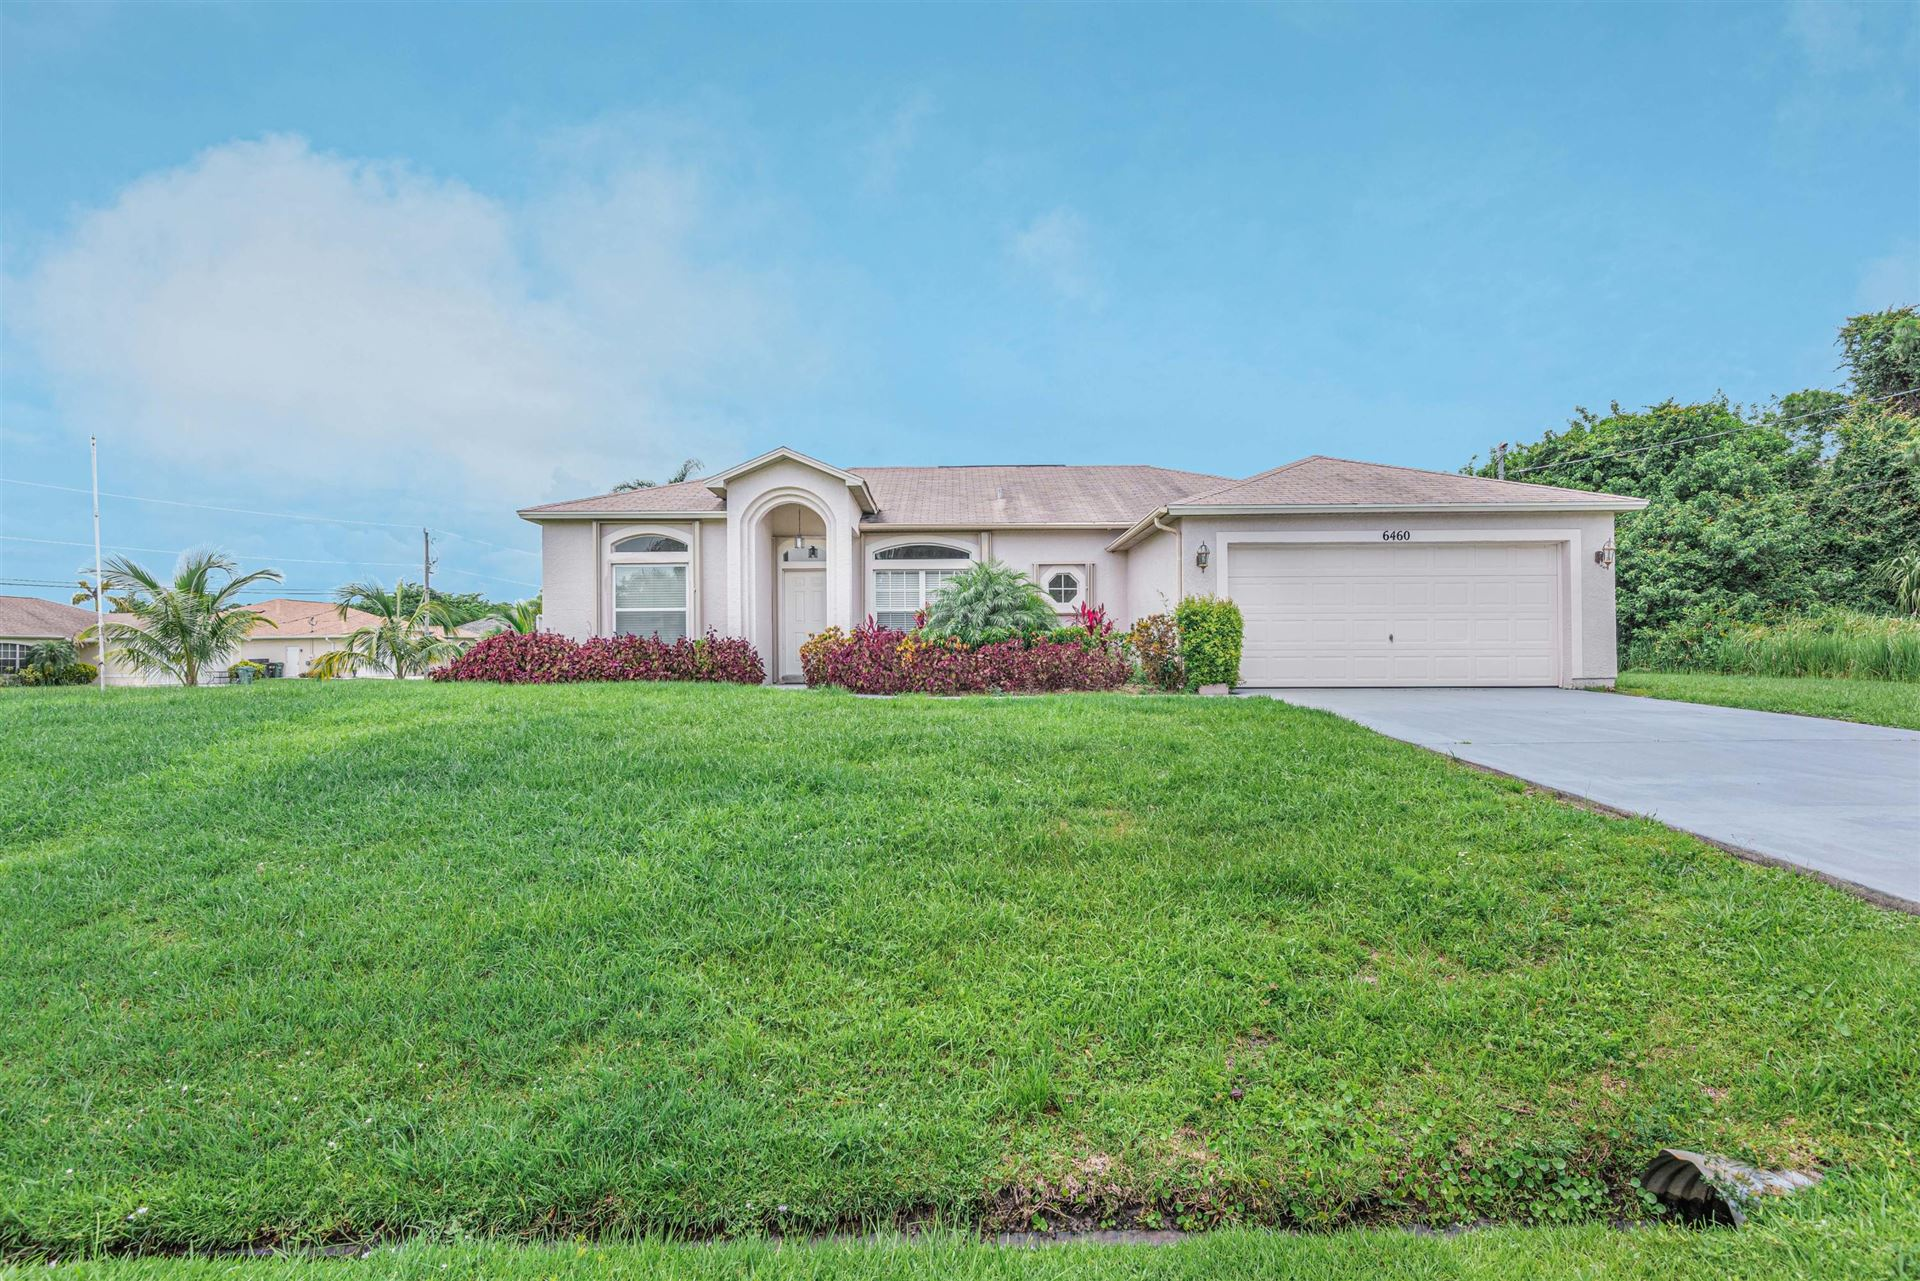 6460 NW Frenze Street, Port Saint Lucie, FL 34986 - #: RX-10628334